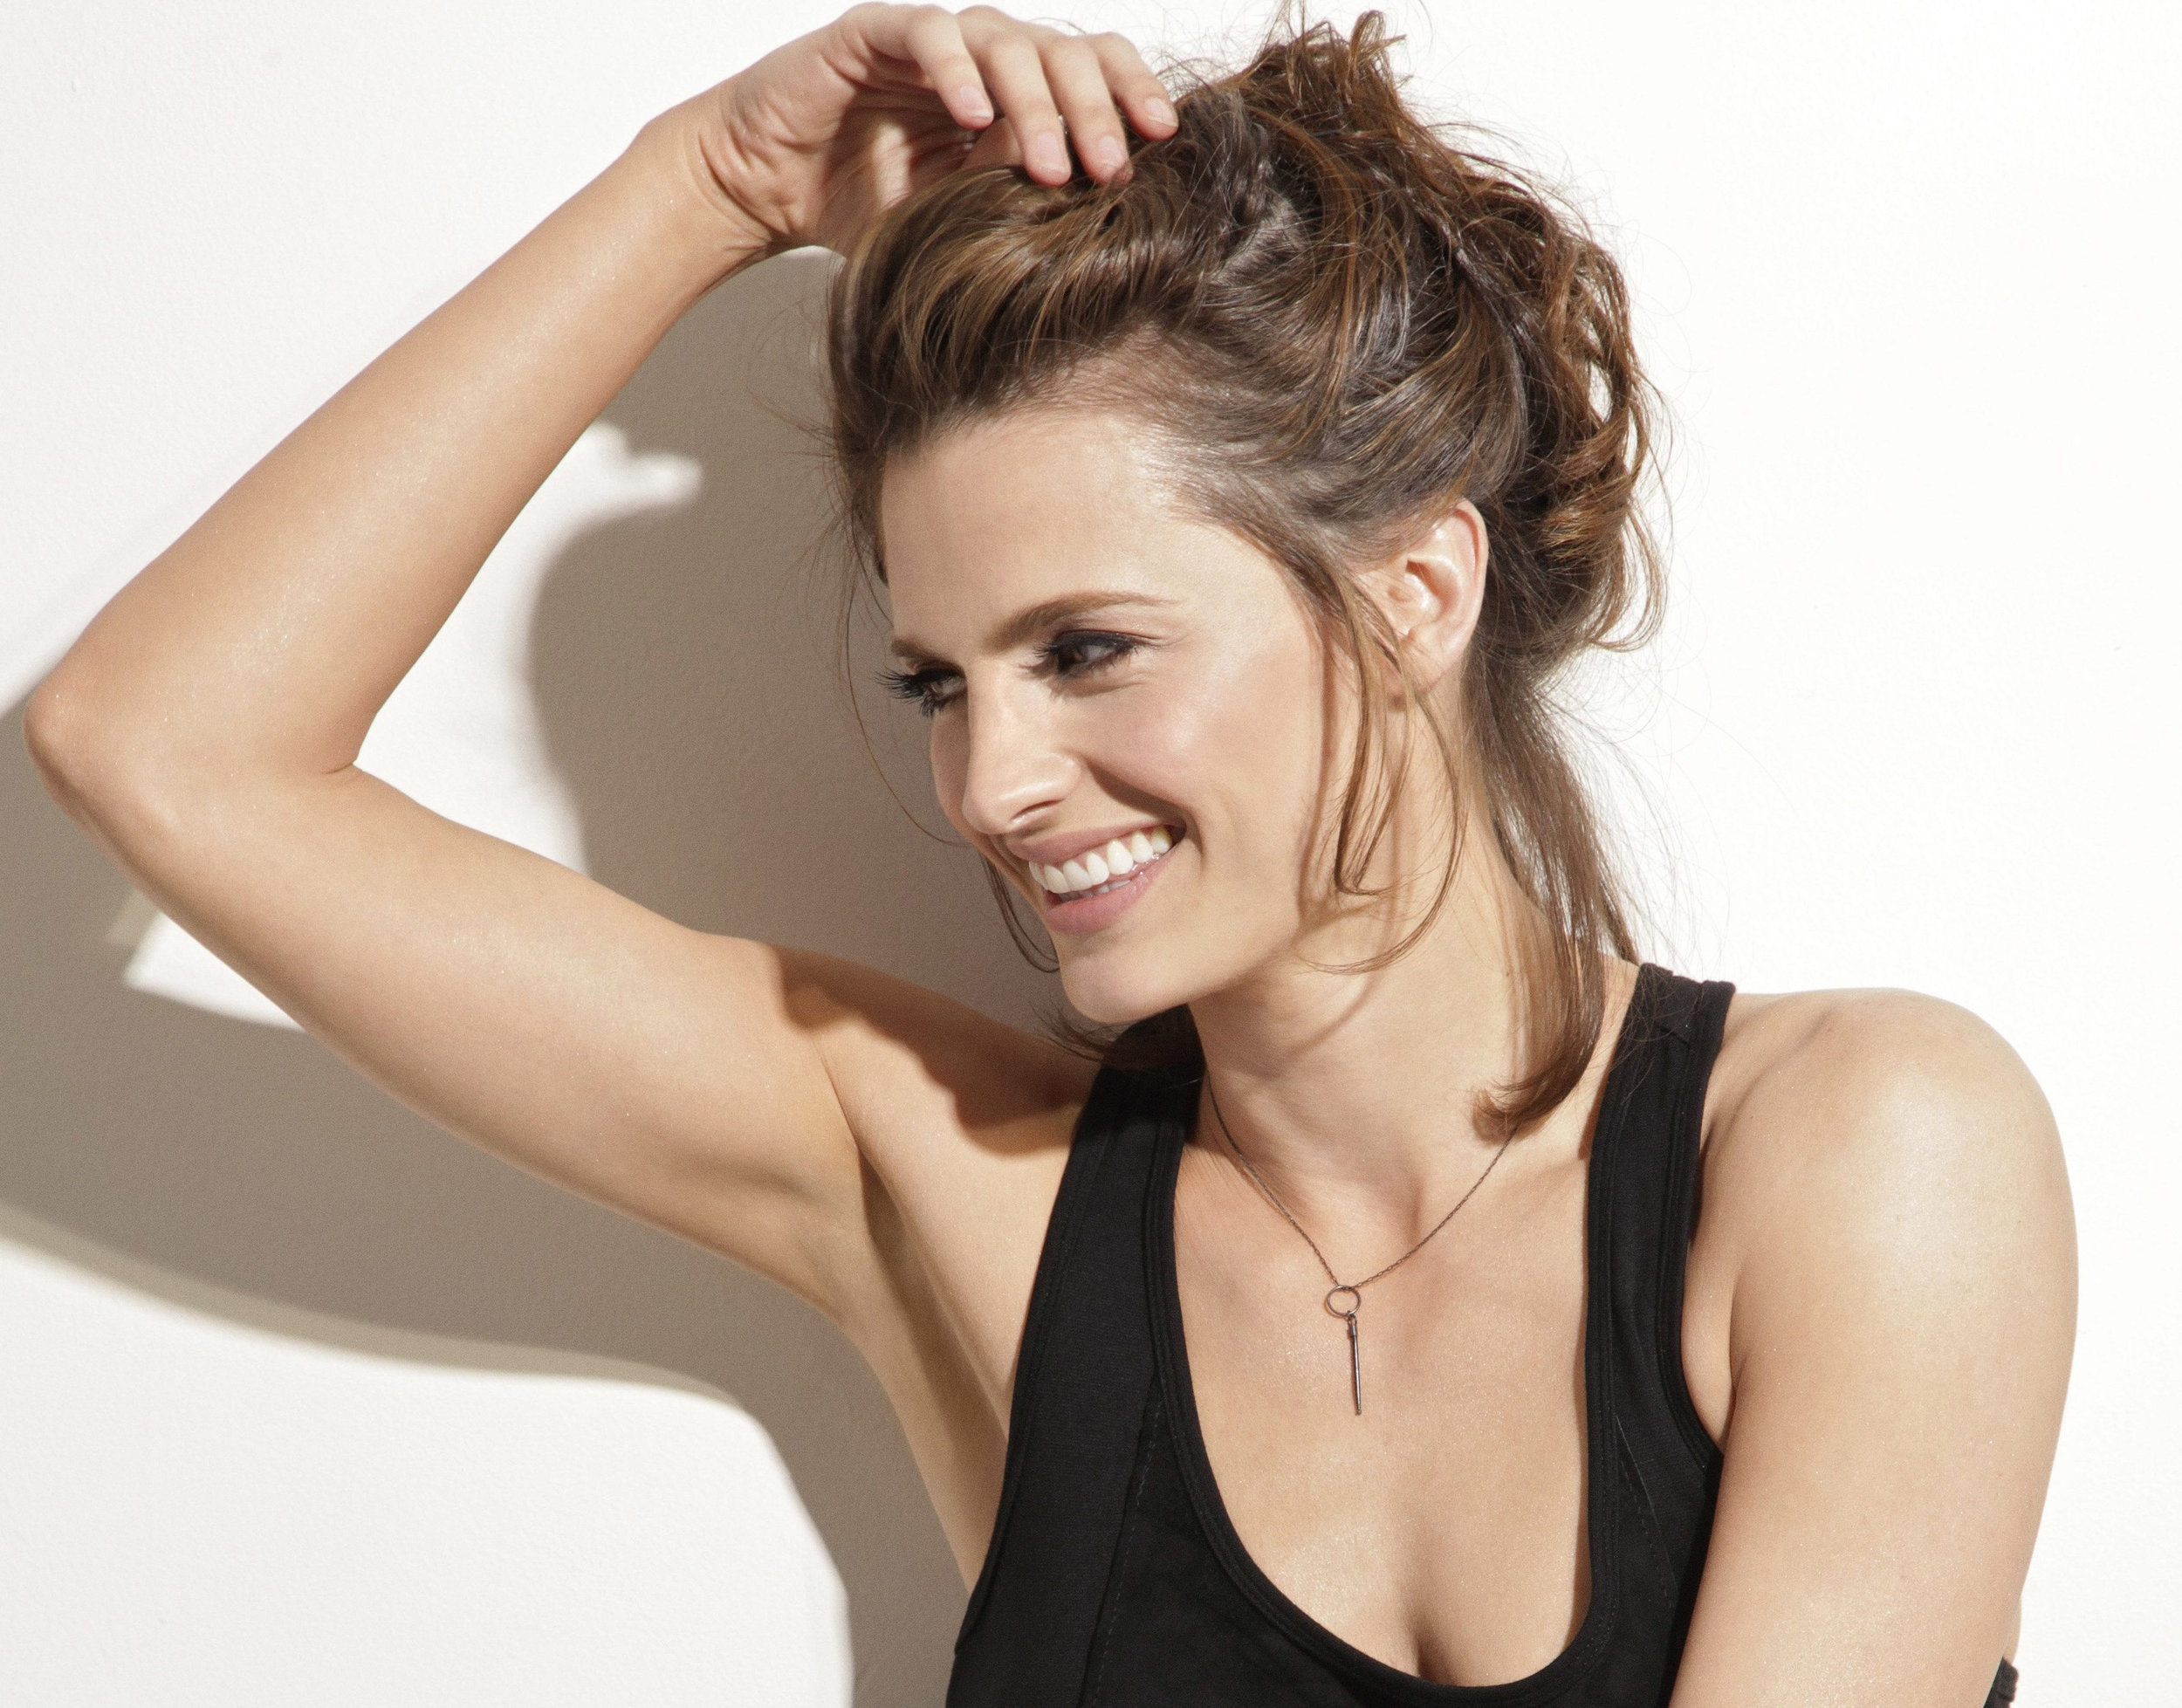 Stana Katic, who has no connection to  Maxim Ultra  outside my imagination.